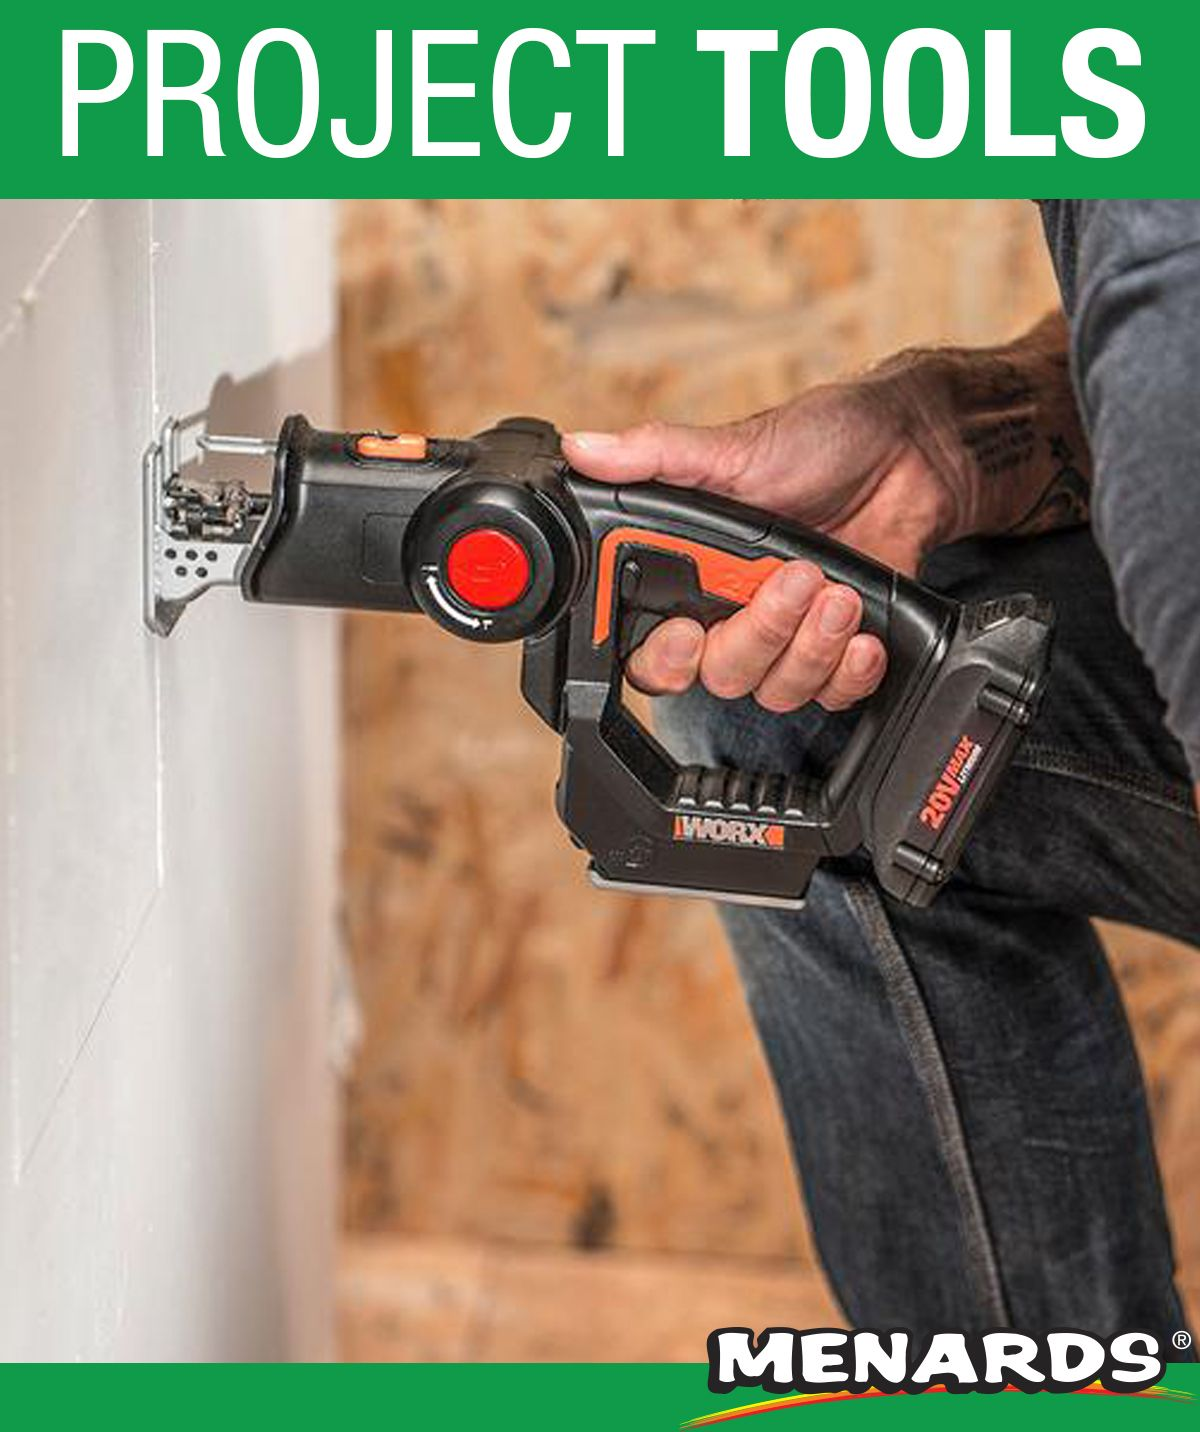 The Worx 20 Volt Axis Reciprocating And Jig Saw Features A Pivoting Head Design That Converts From A Reciprocating